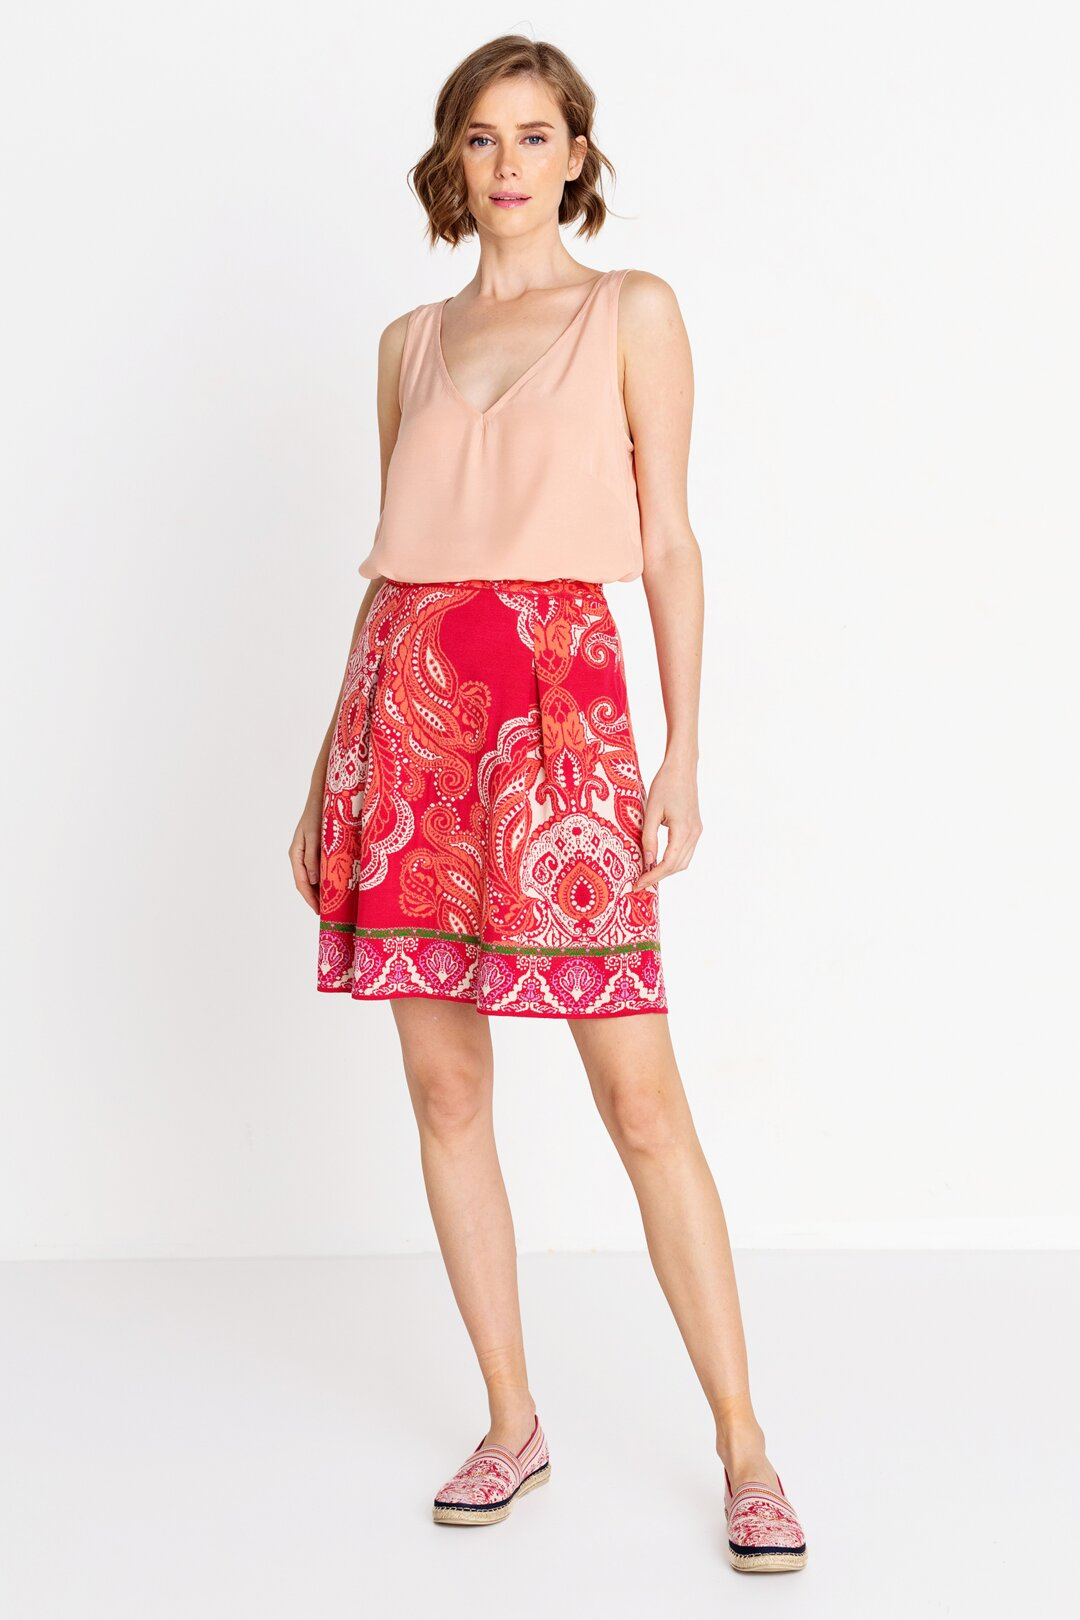 outfit-7c8a5769